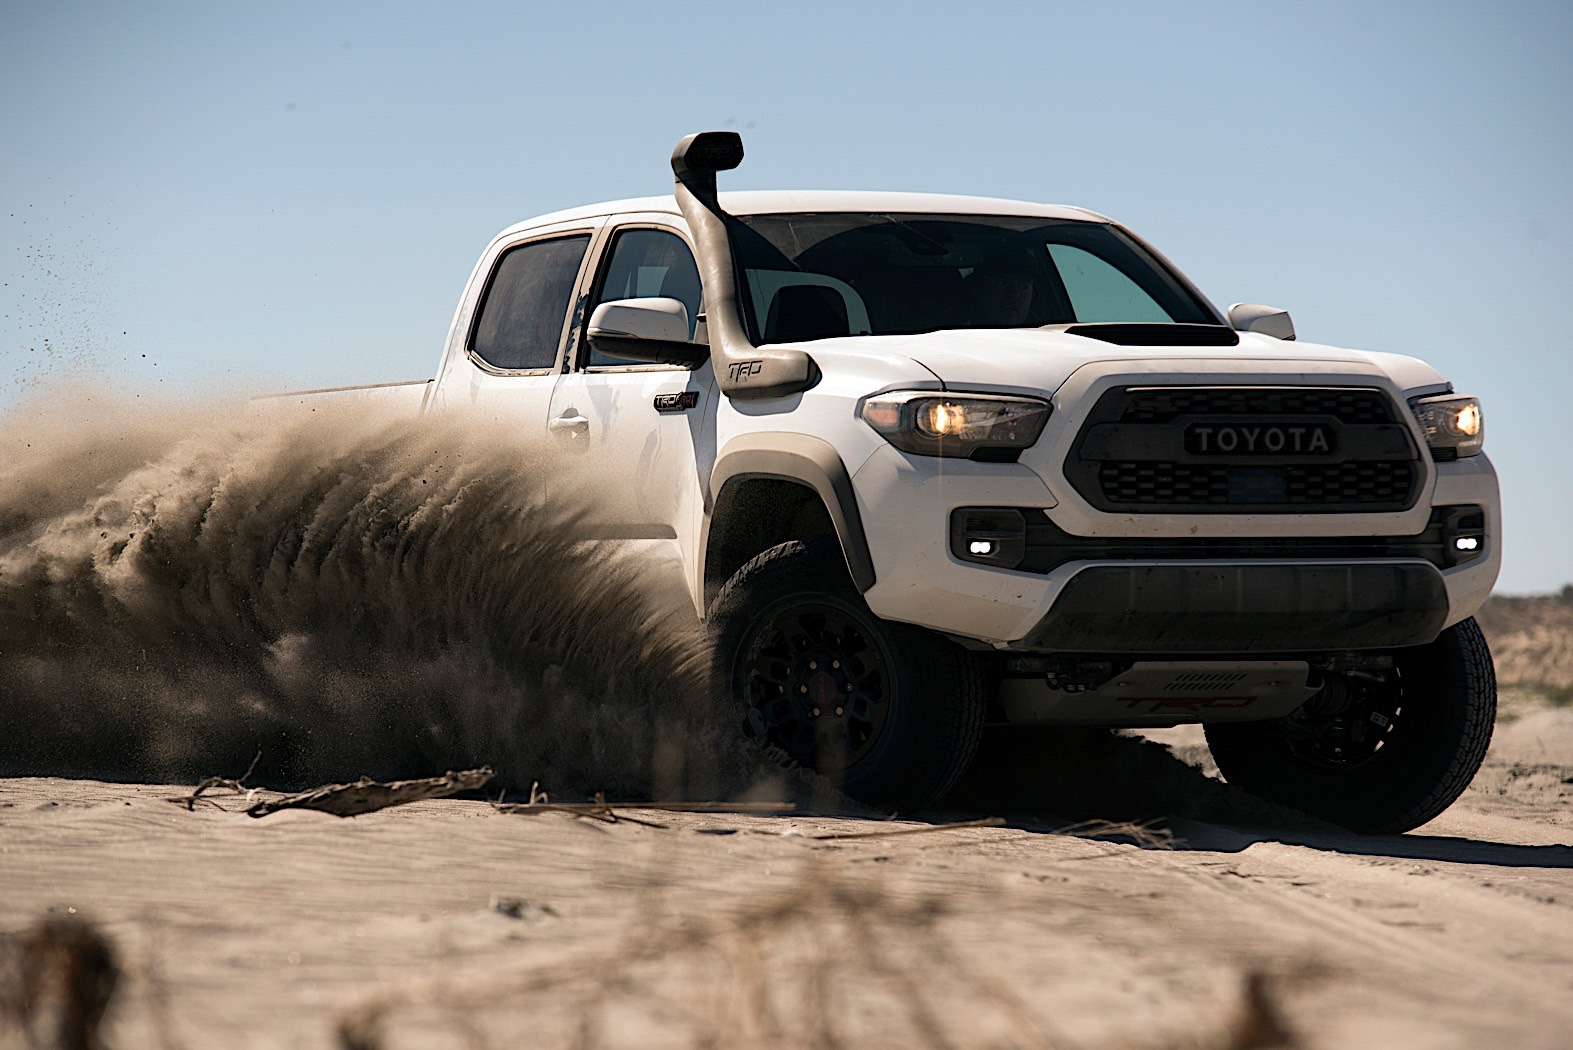 Toyota Tacoma TRD Pro Gets Snorkel So It Doesn't Choke on Sand